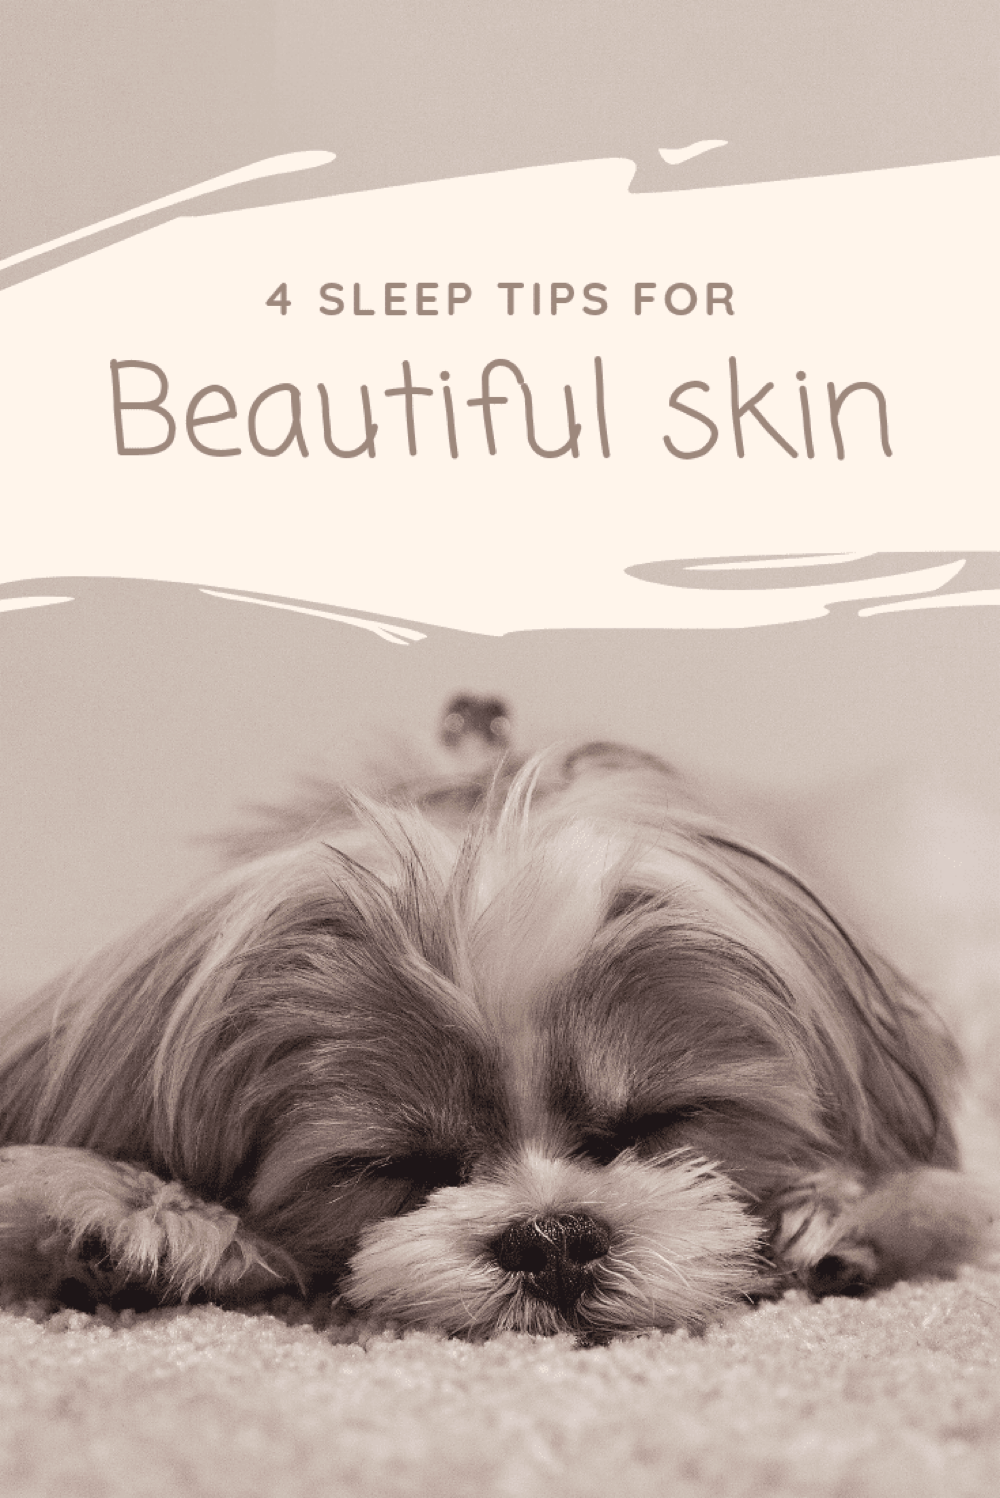 4-sleep-tips-for-beautiful-skin